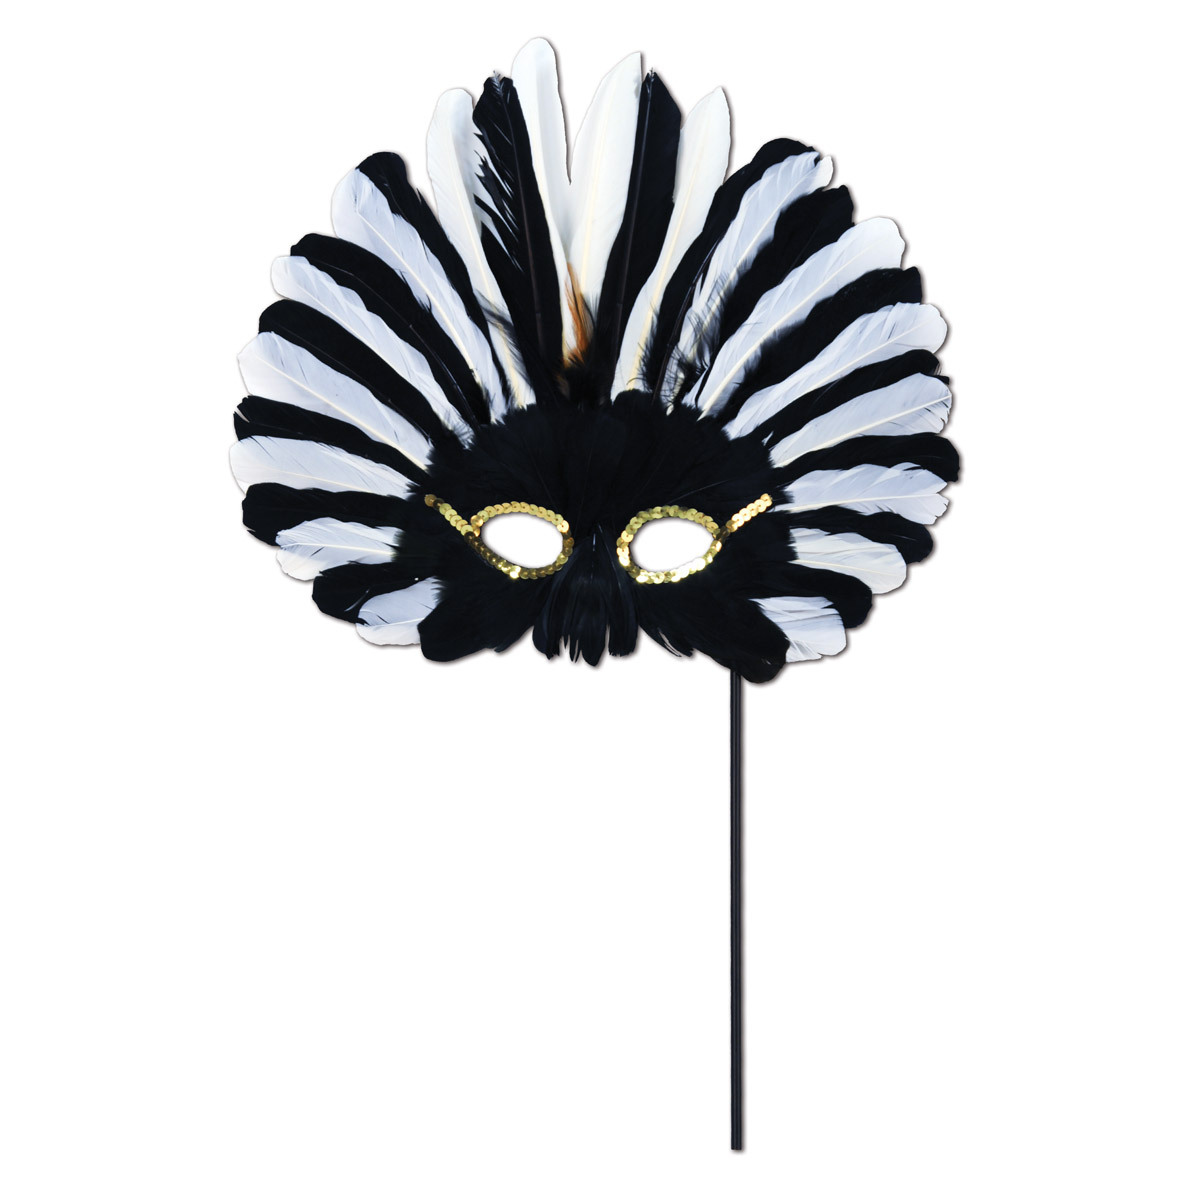 Black & White Feathered Mask with Stick (Pack of 12)  feather, mask, stick, masquerade, mardi gras, black and white, black, white, party, gala, party favor, feathered mask, mask with stick